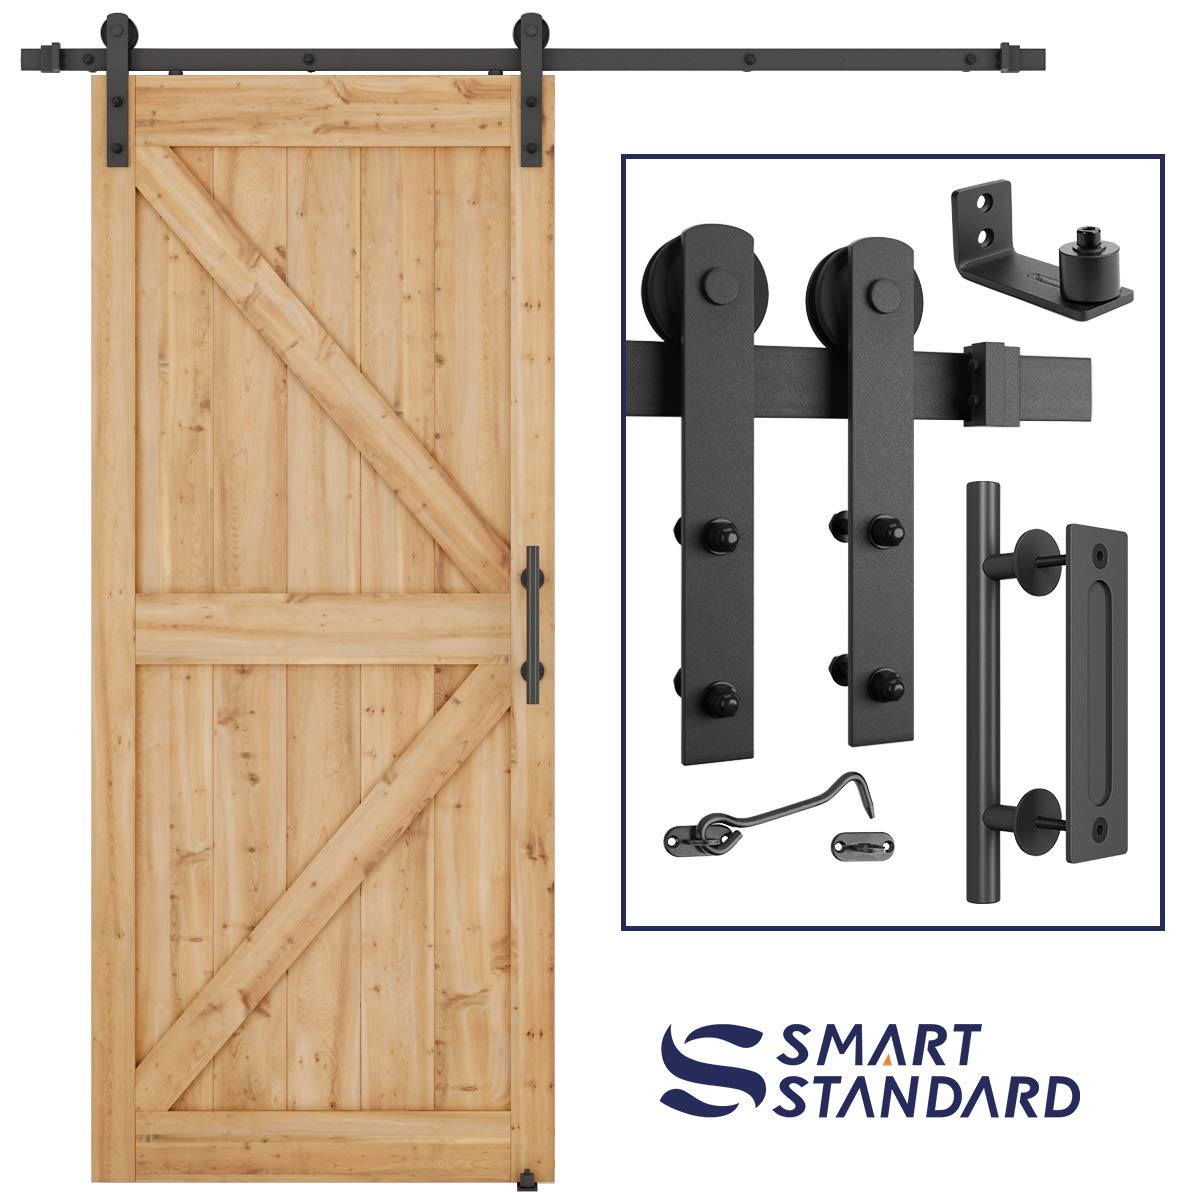 6.6 FT Heavy Duty Sturdy Sliding Barn Door Hardware Kit, 6.6ft Double Rail, Black, (Whole Set Includes 1x Pull Handle Set & 1x Floor Guide & 1x Latch Lock) Fit 36''-40'' Wide Door Panel (I Shape Hanger)